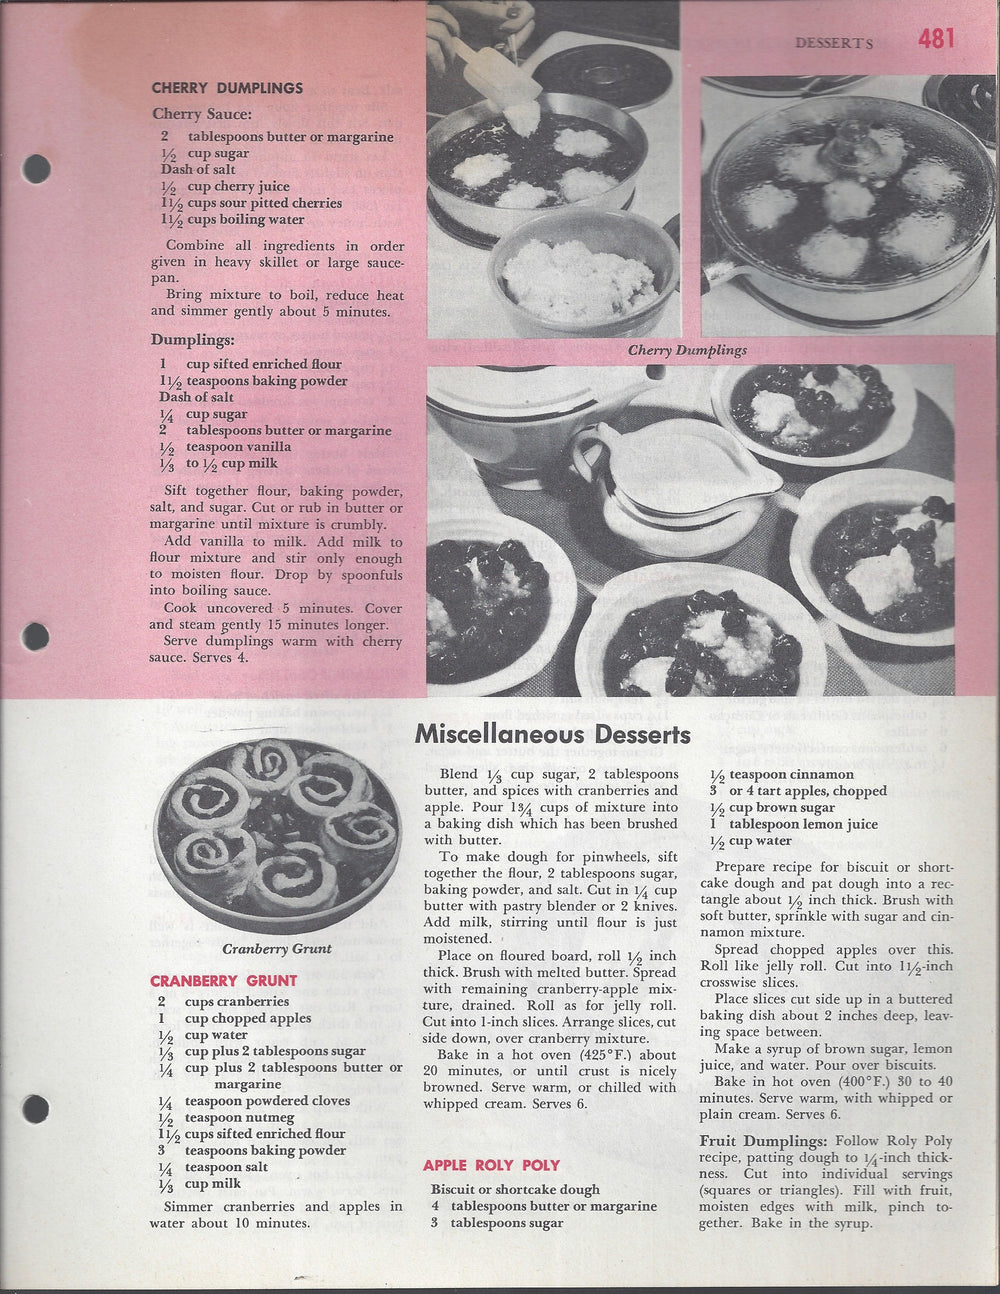 Mary Margaret McBride Encyclopedia of Cooking Cook Book Deluxe Edition 1960 (2ND EDITION) (PAGES 481-512)